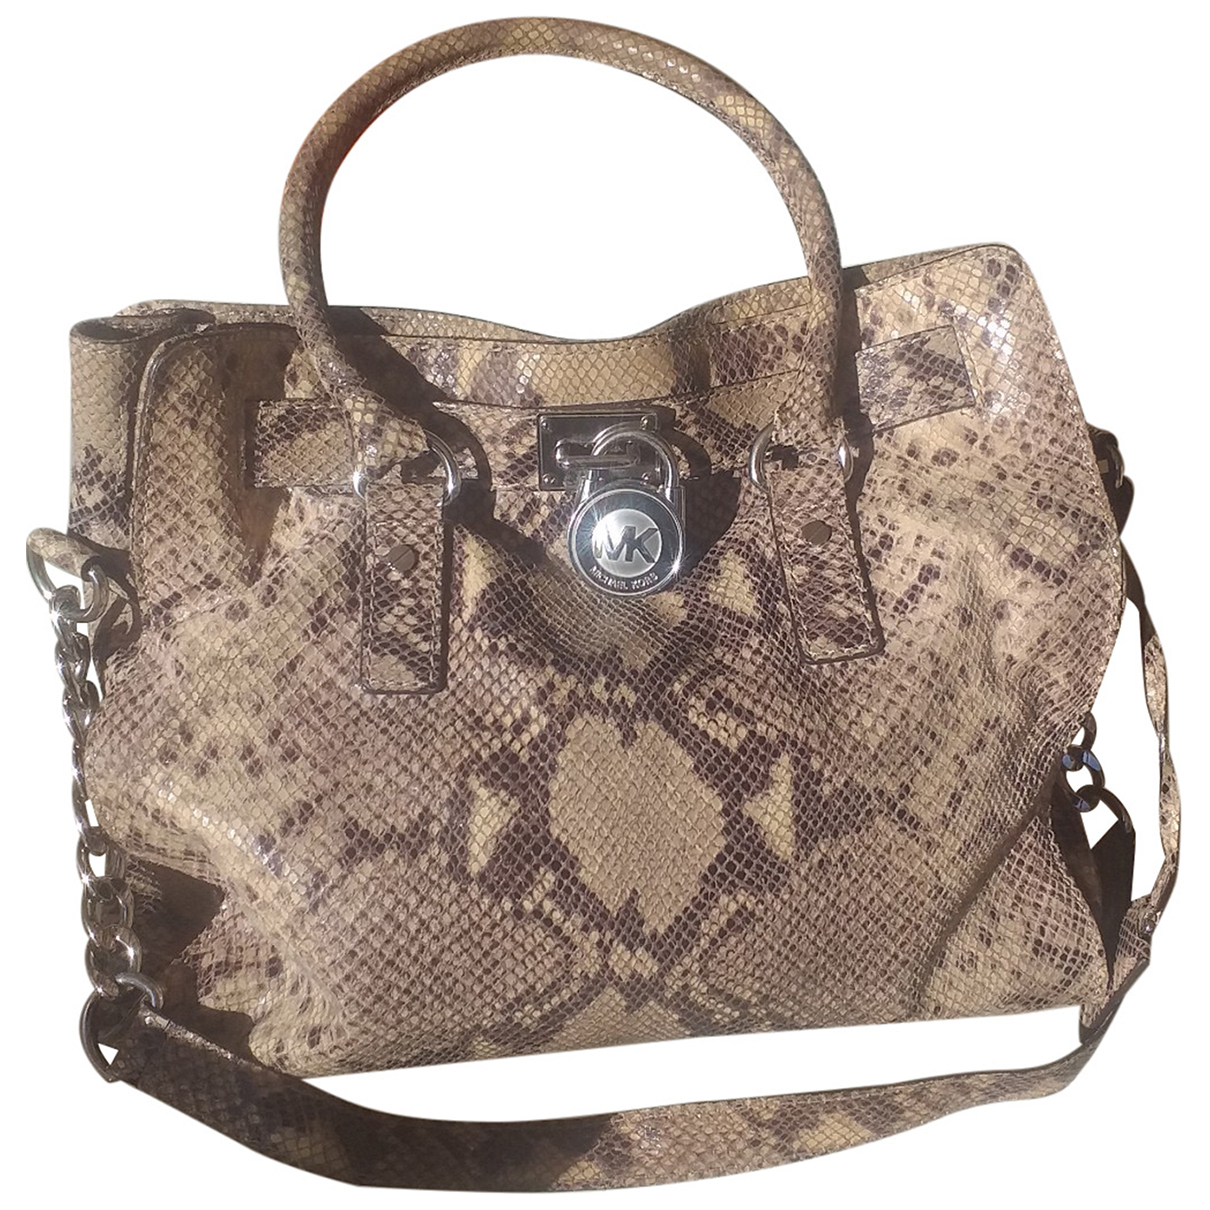 Michael Kors Hamilton Handtasche in Fell